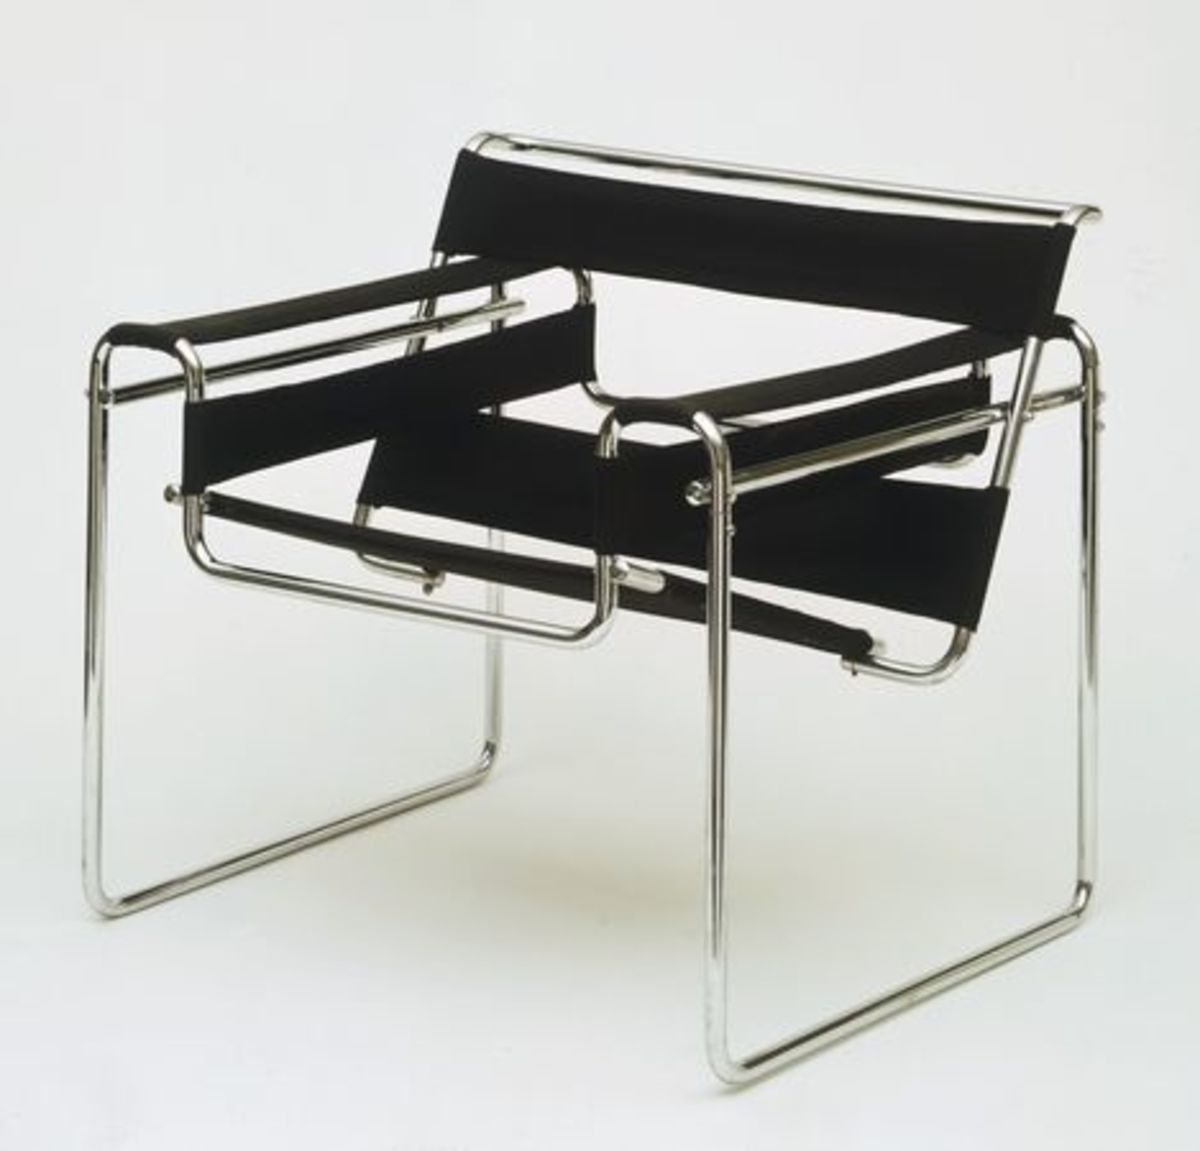 Marcel Breuer's revolutionary chair, which he designed while still a student.